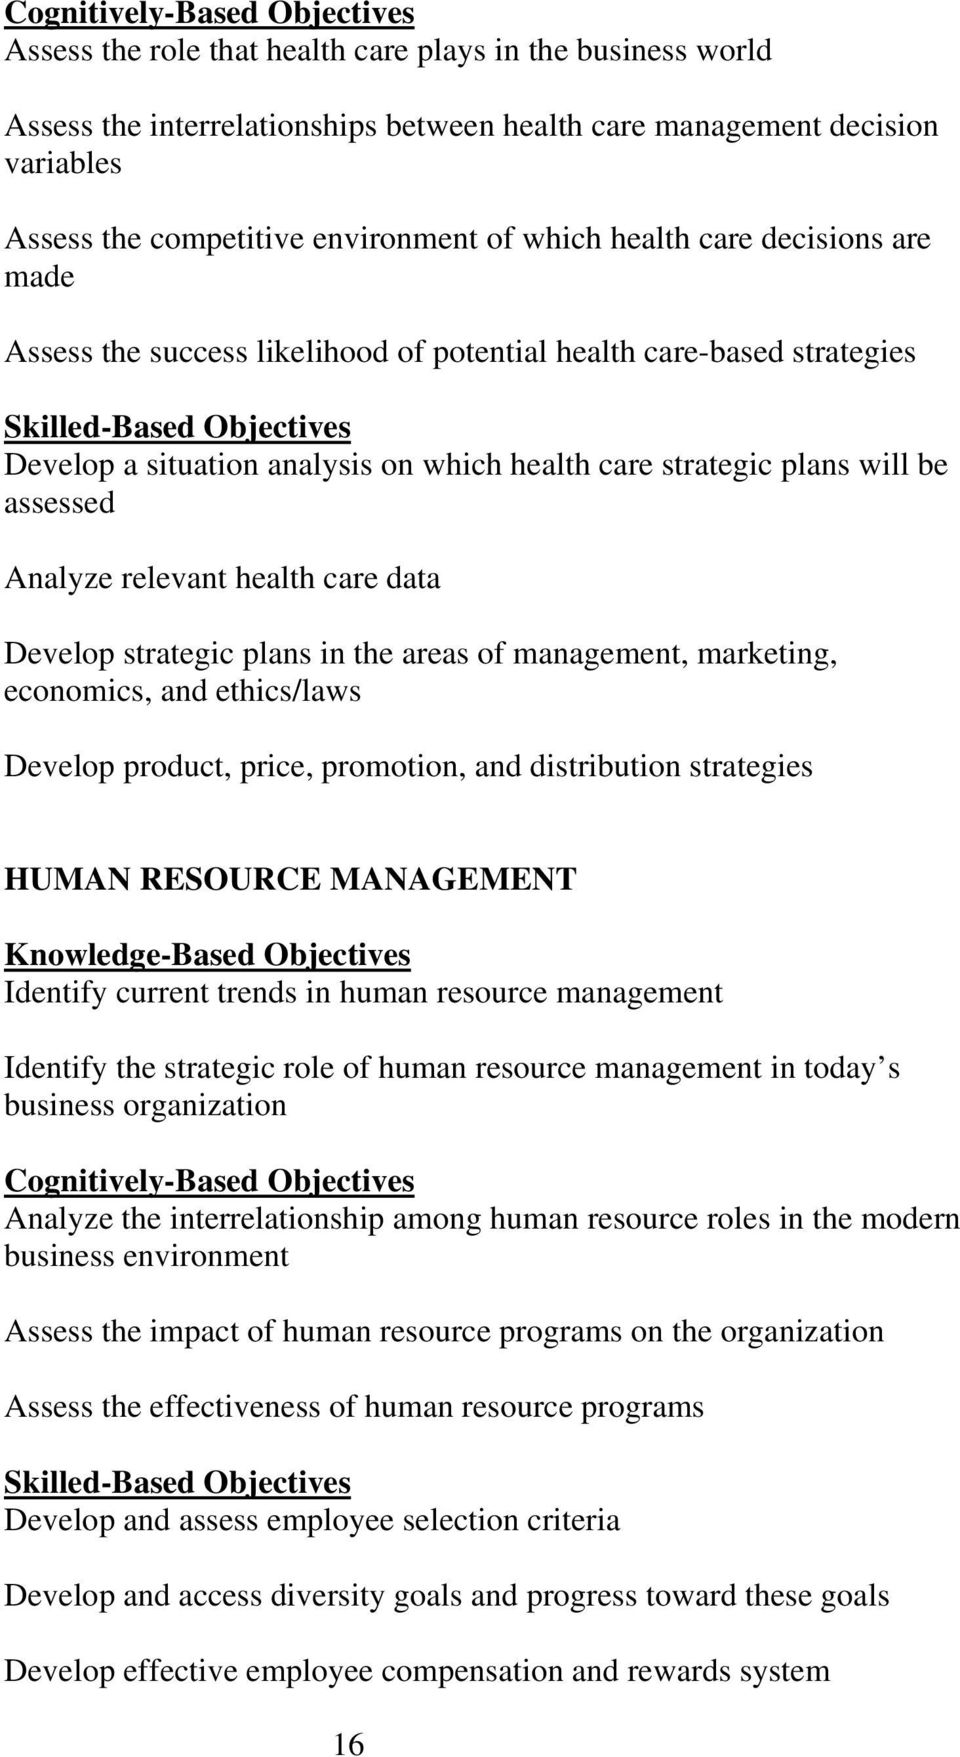 strategic plans will be assessed Analyze relevant health care data Develop strategic plans in the areas of management, marketing, economics, and ethics/laws Develop product, price, promotion, and